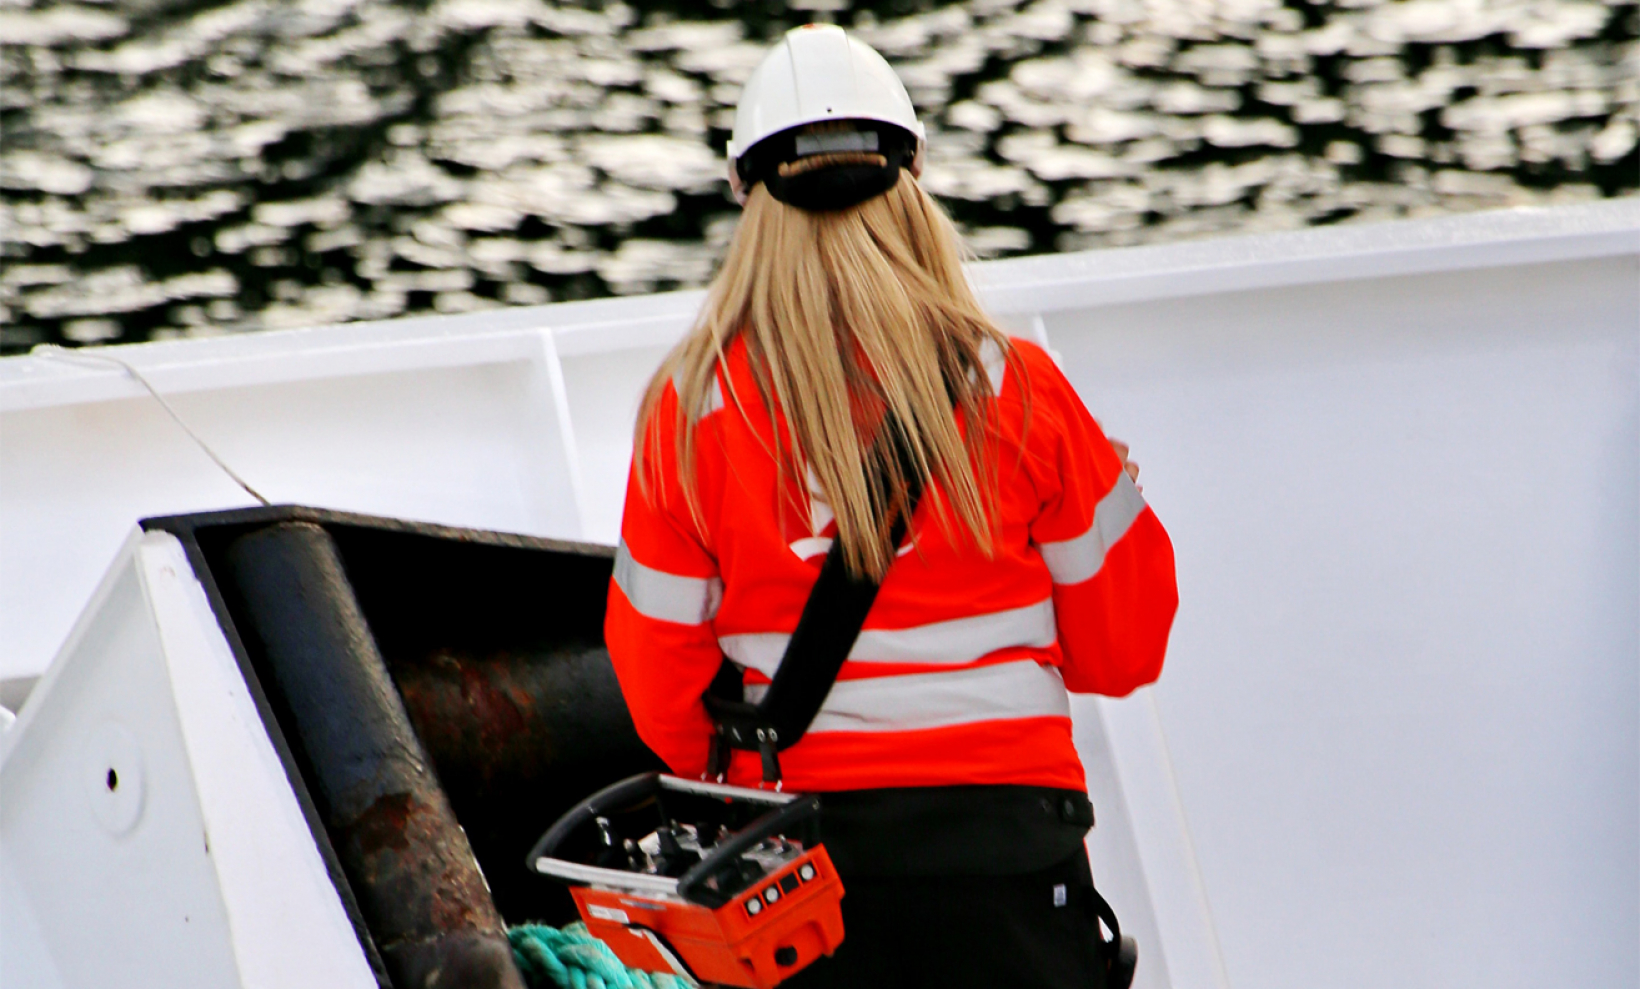 EUSPA is currently developing a new EGNOS service dedicated to the maritime users, which will complement and serve as an alternative to the local DGNSS networks currently deployed along the European coasts.